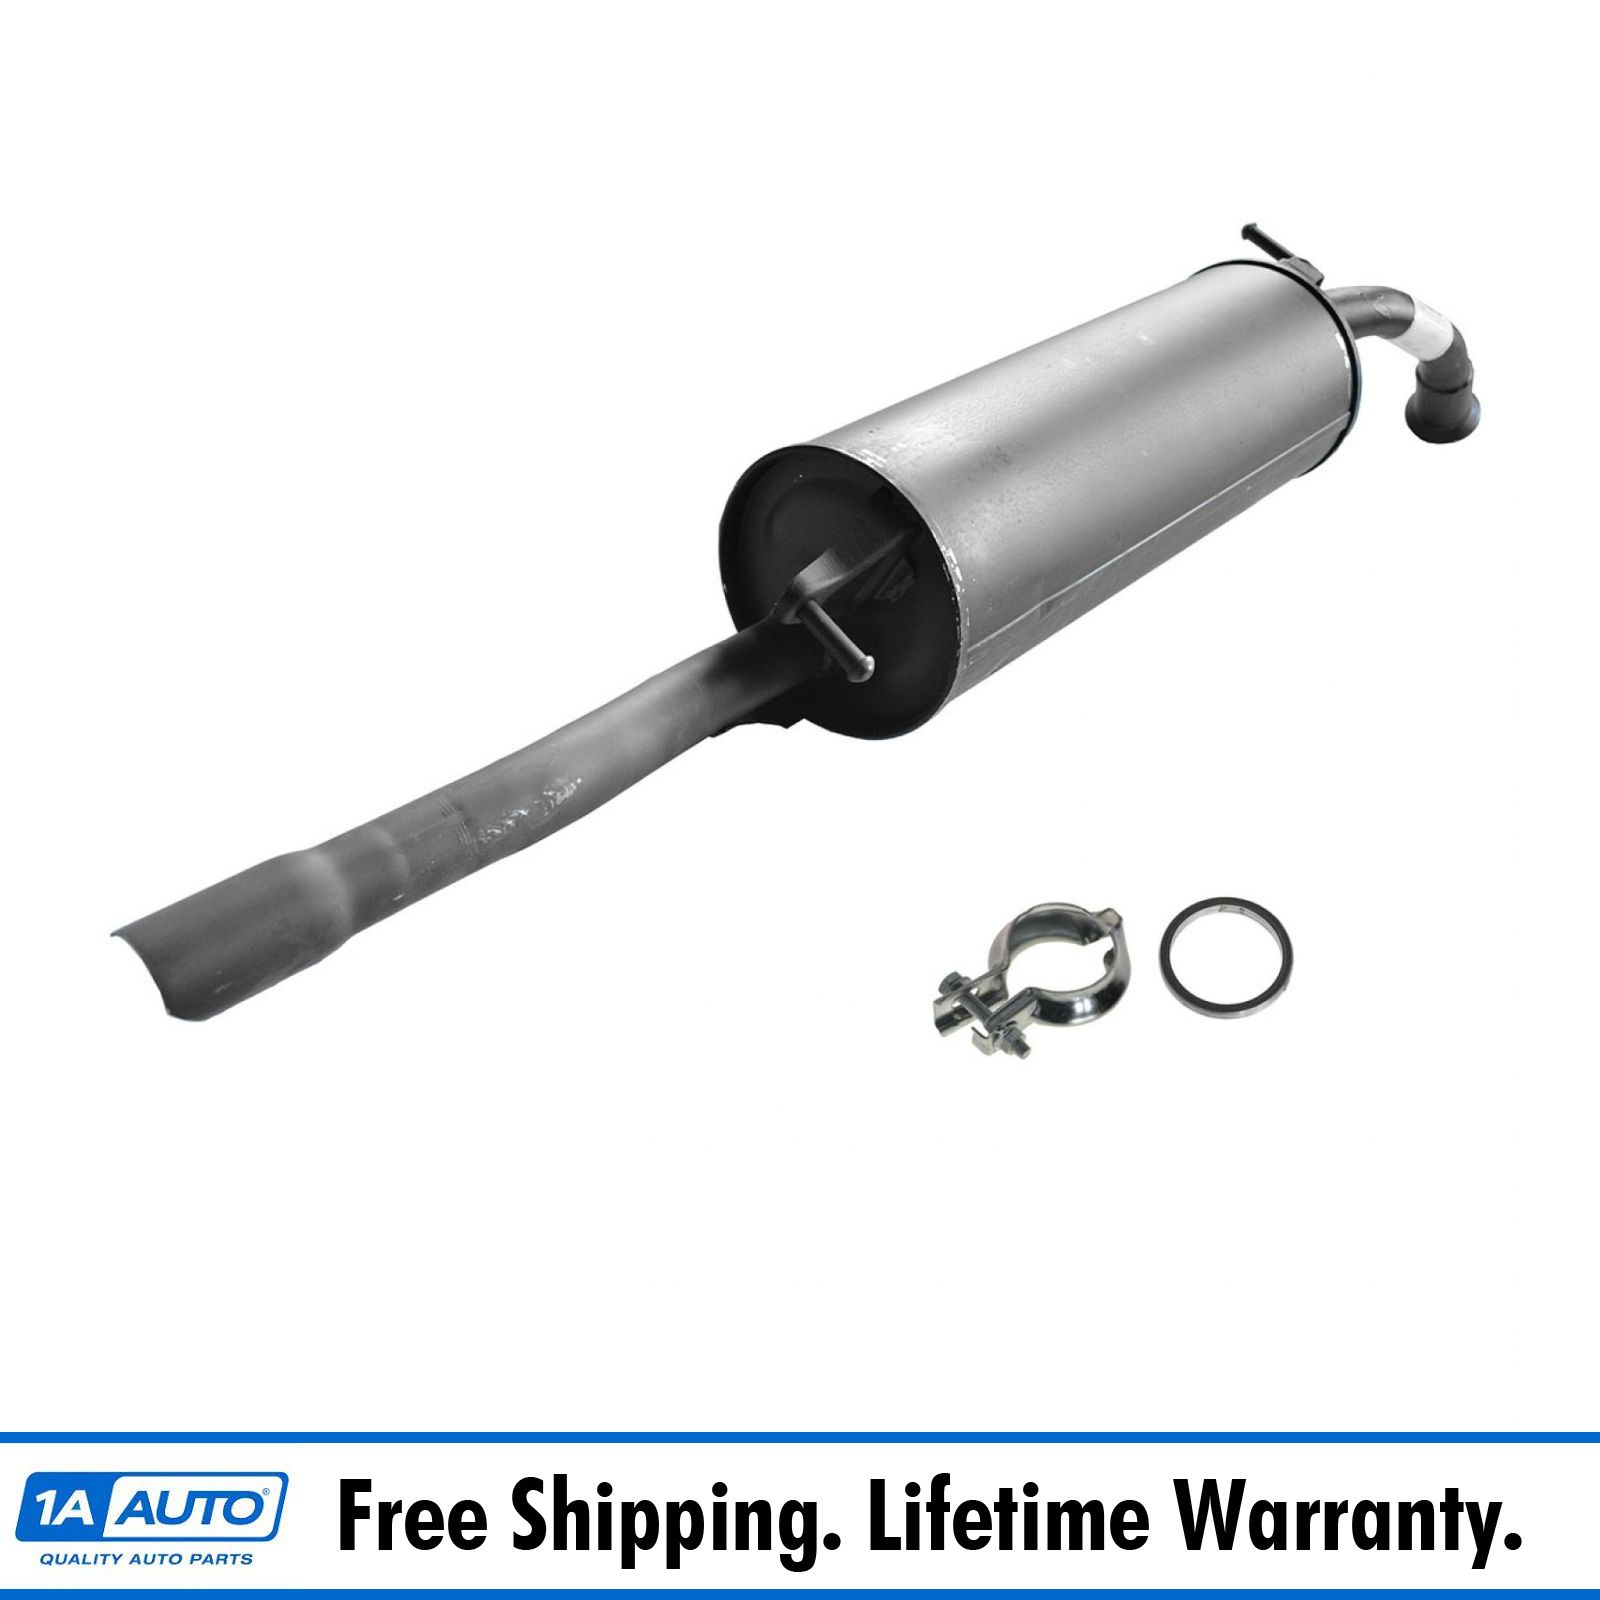 Rear Exhaust Pipe Muffler Section With Gasket for 97-99 Toyota Camry L4 2.2L